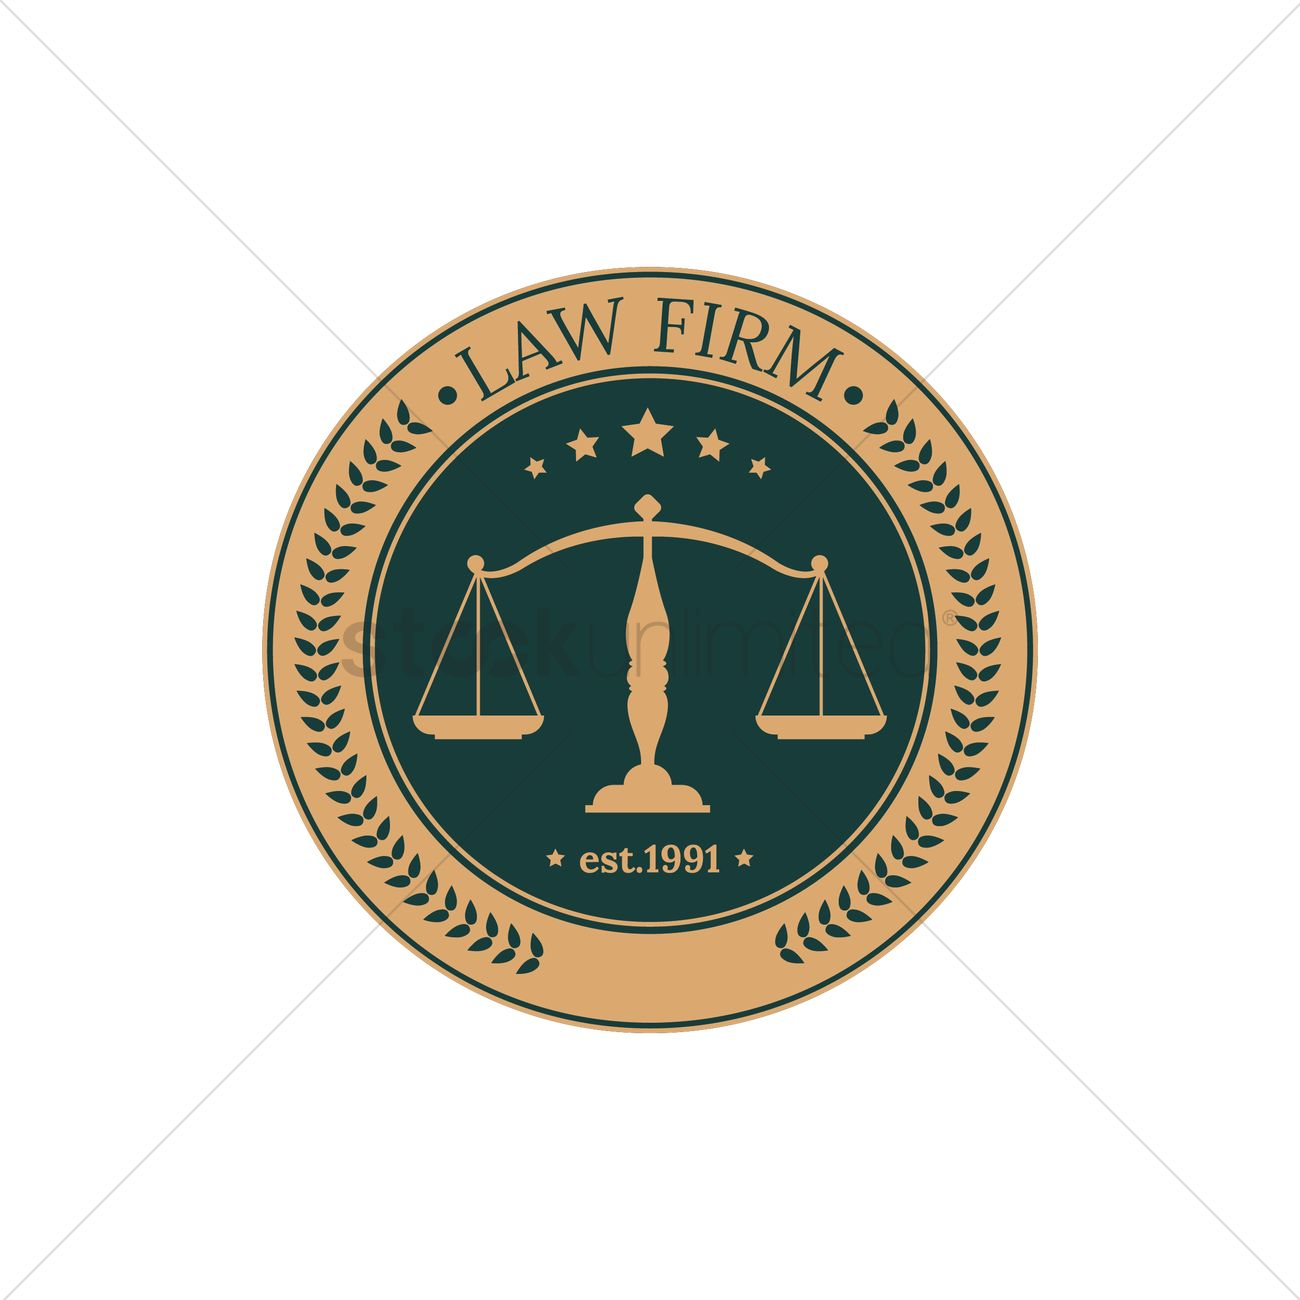 Law firm logo element design Vector Image - 1969774 | StockUnlimited